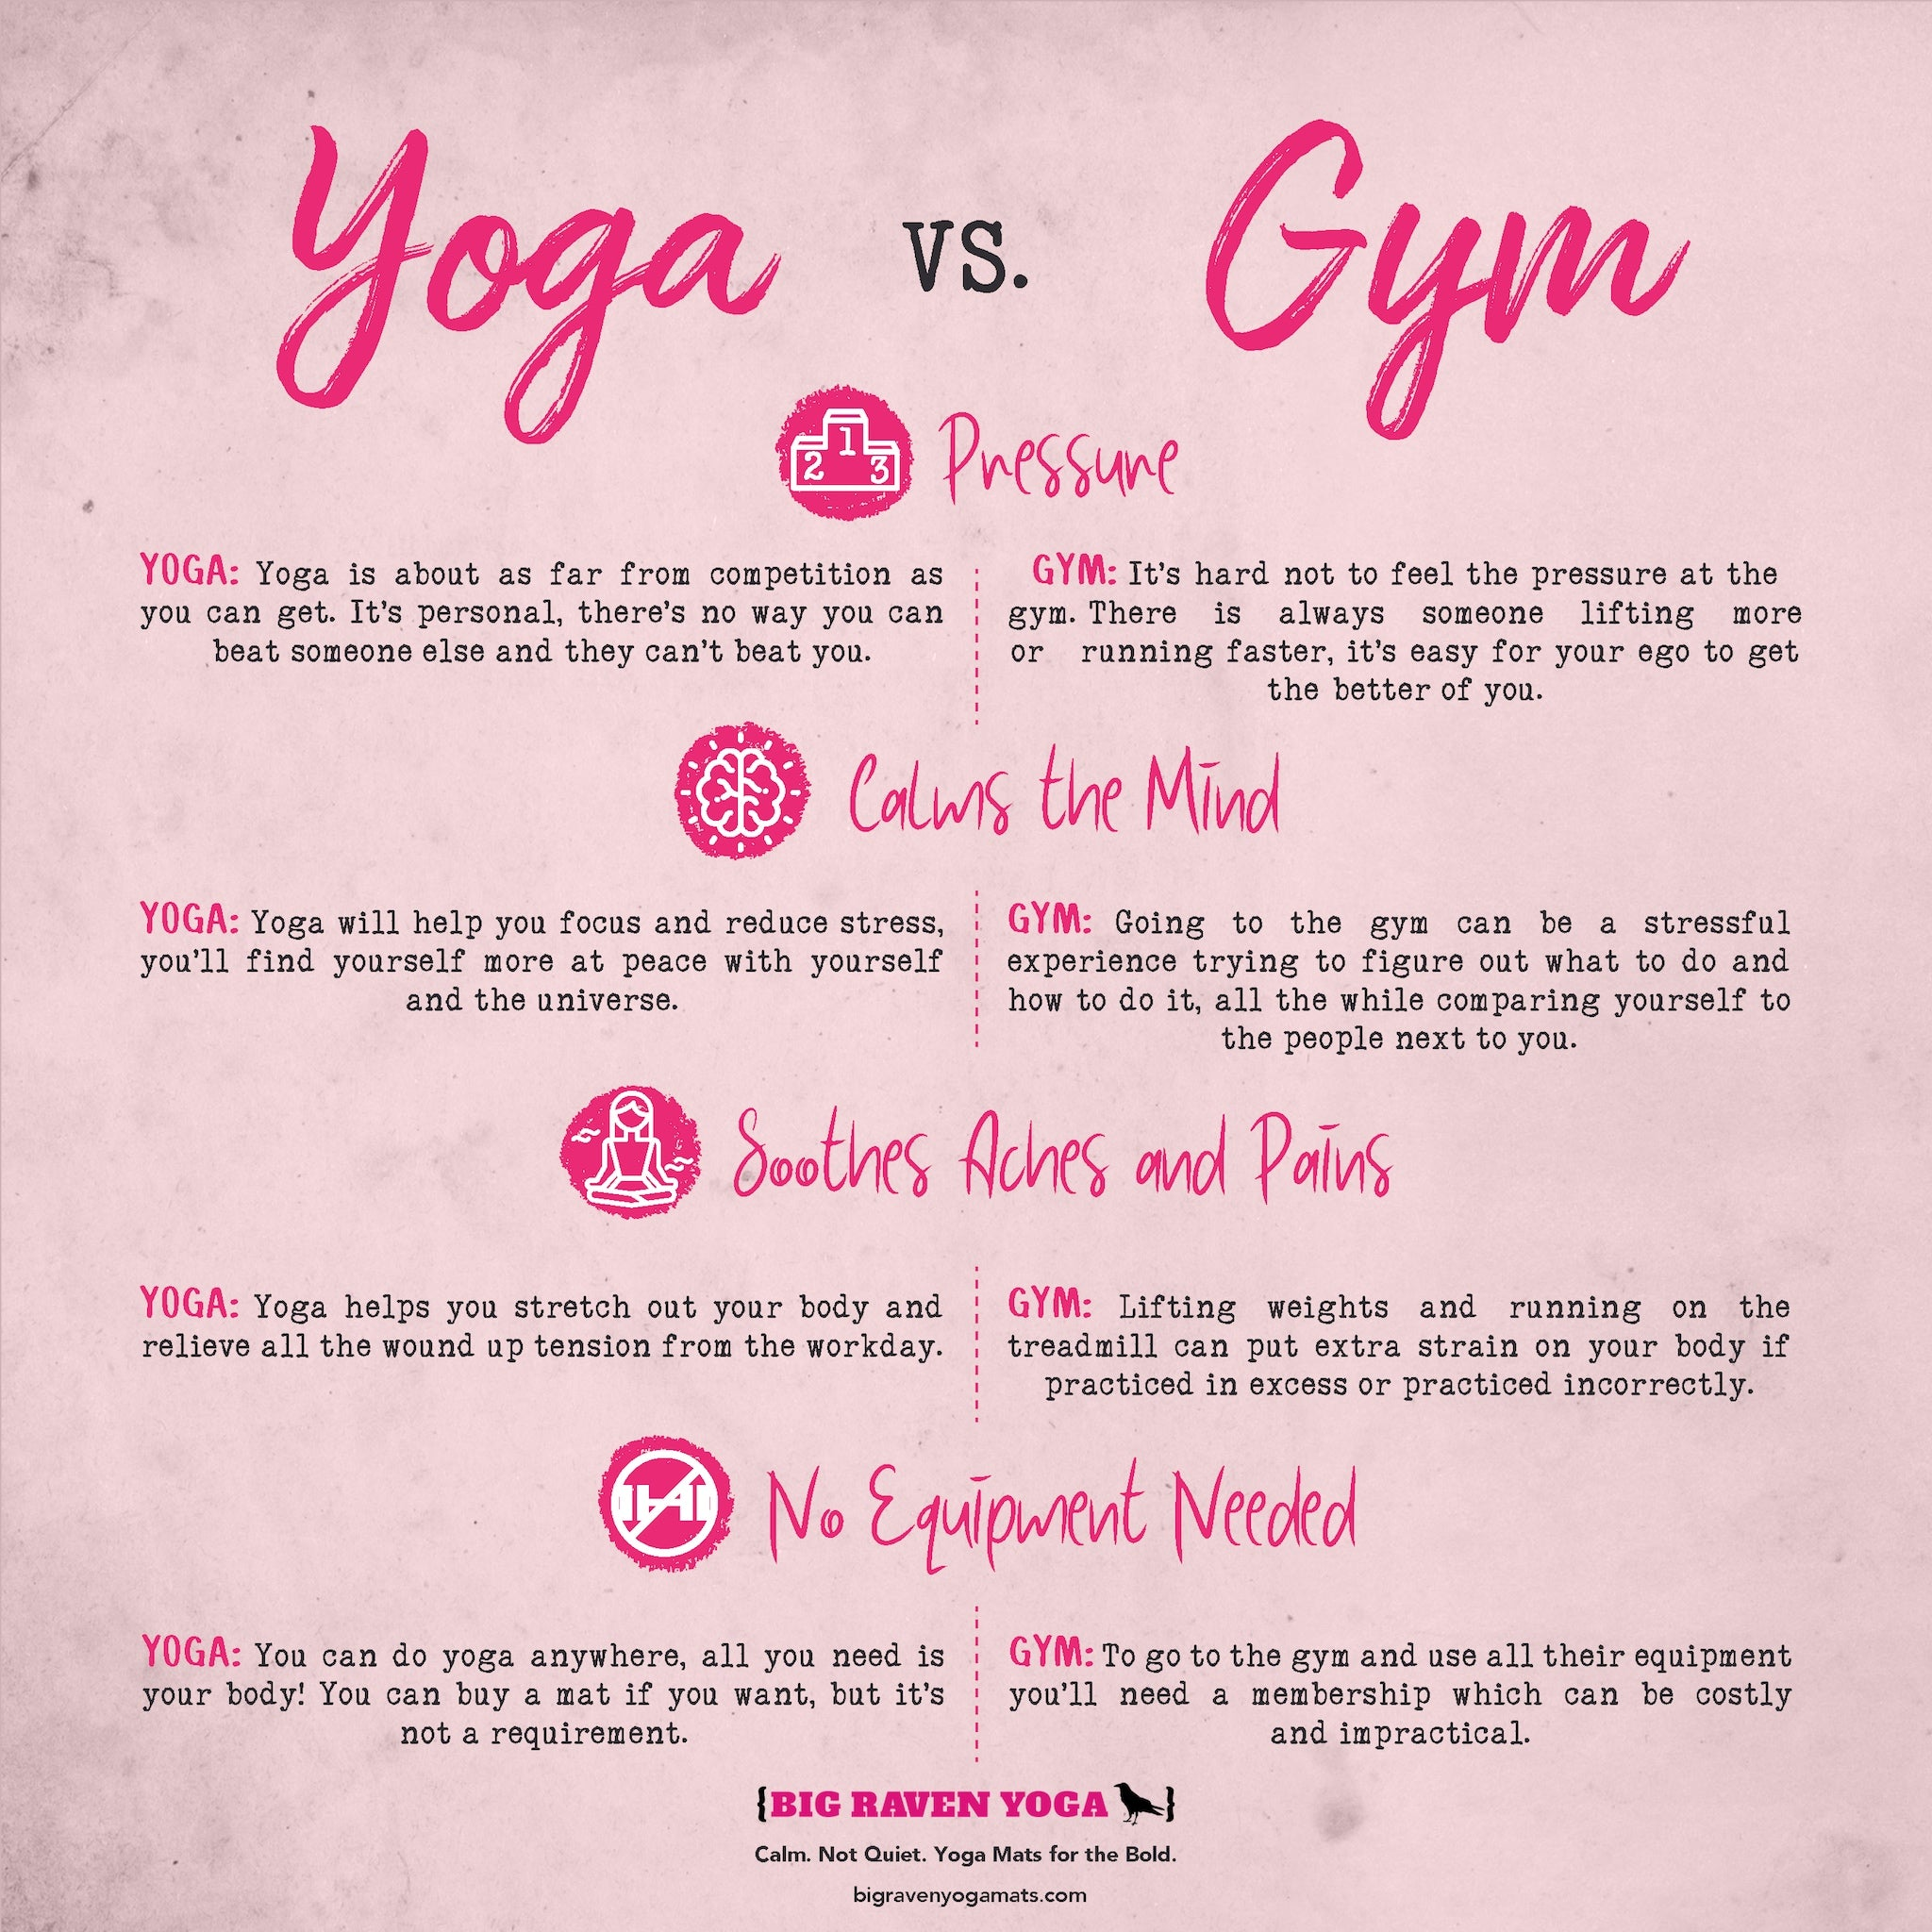 Yoga Versus Gym Infographic